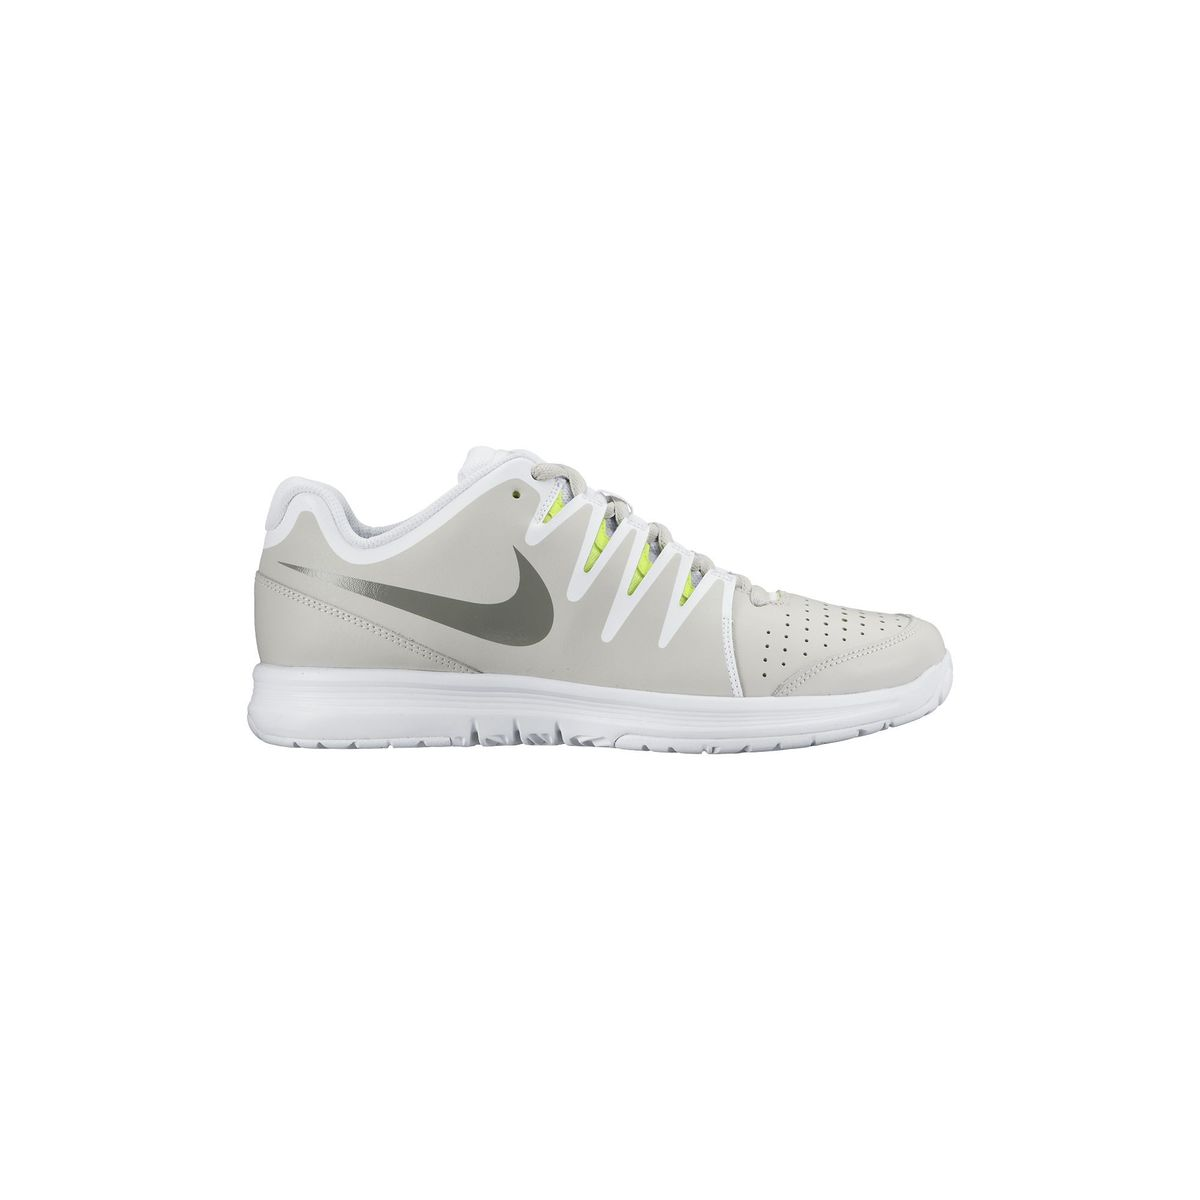 Men's Nike Vapor Court Tennis Shoe ...